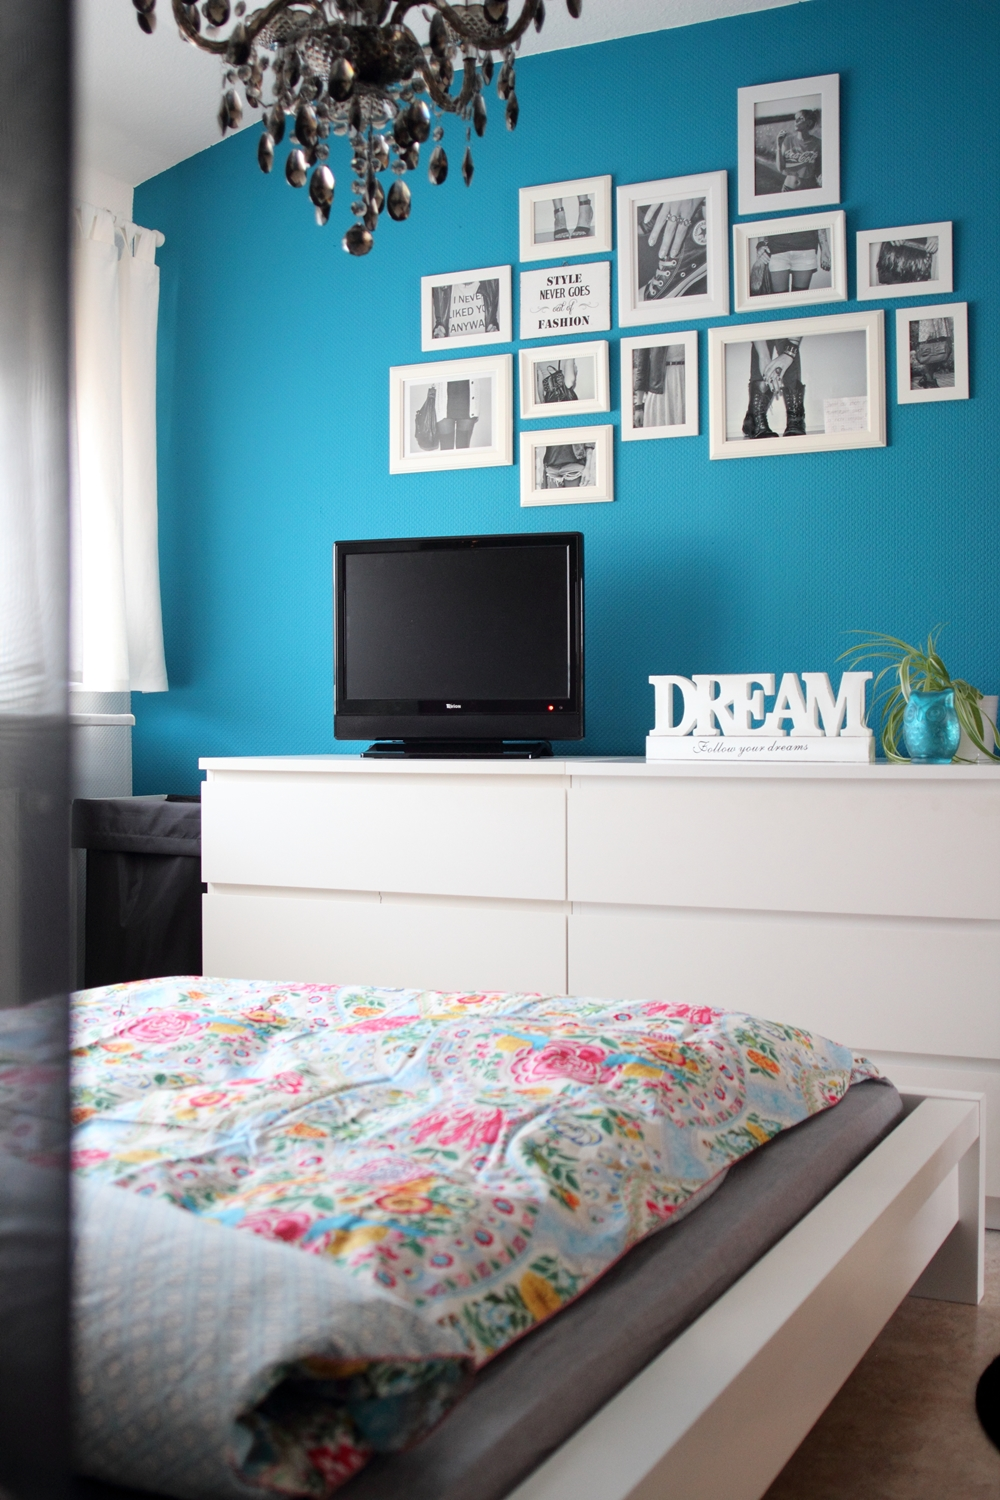 schlafzimmer bettw sche pip deko blaue wand bilderwand lavie deboite. Black Bedroom Furniture Sets. Home Design Ideas